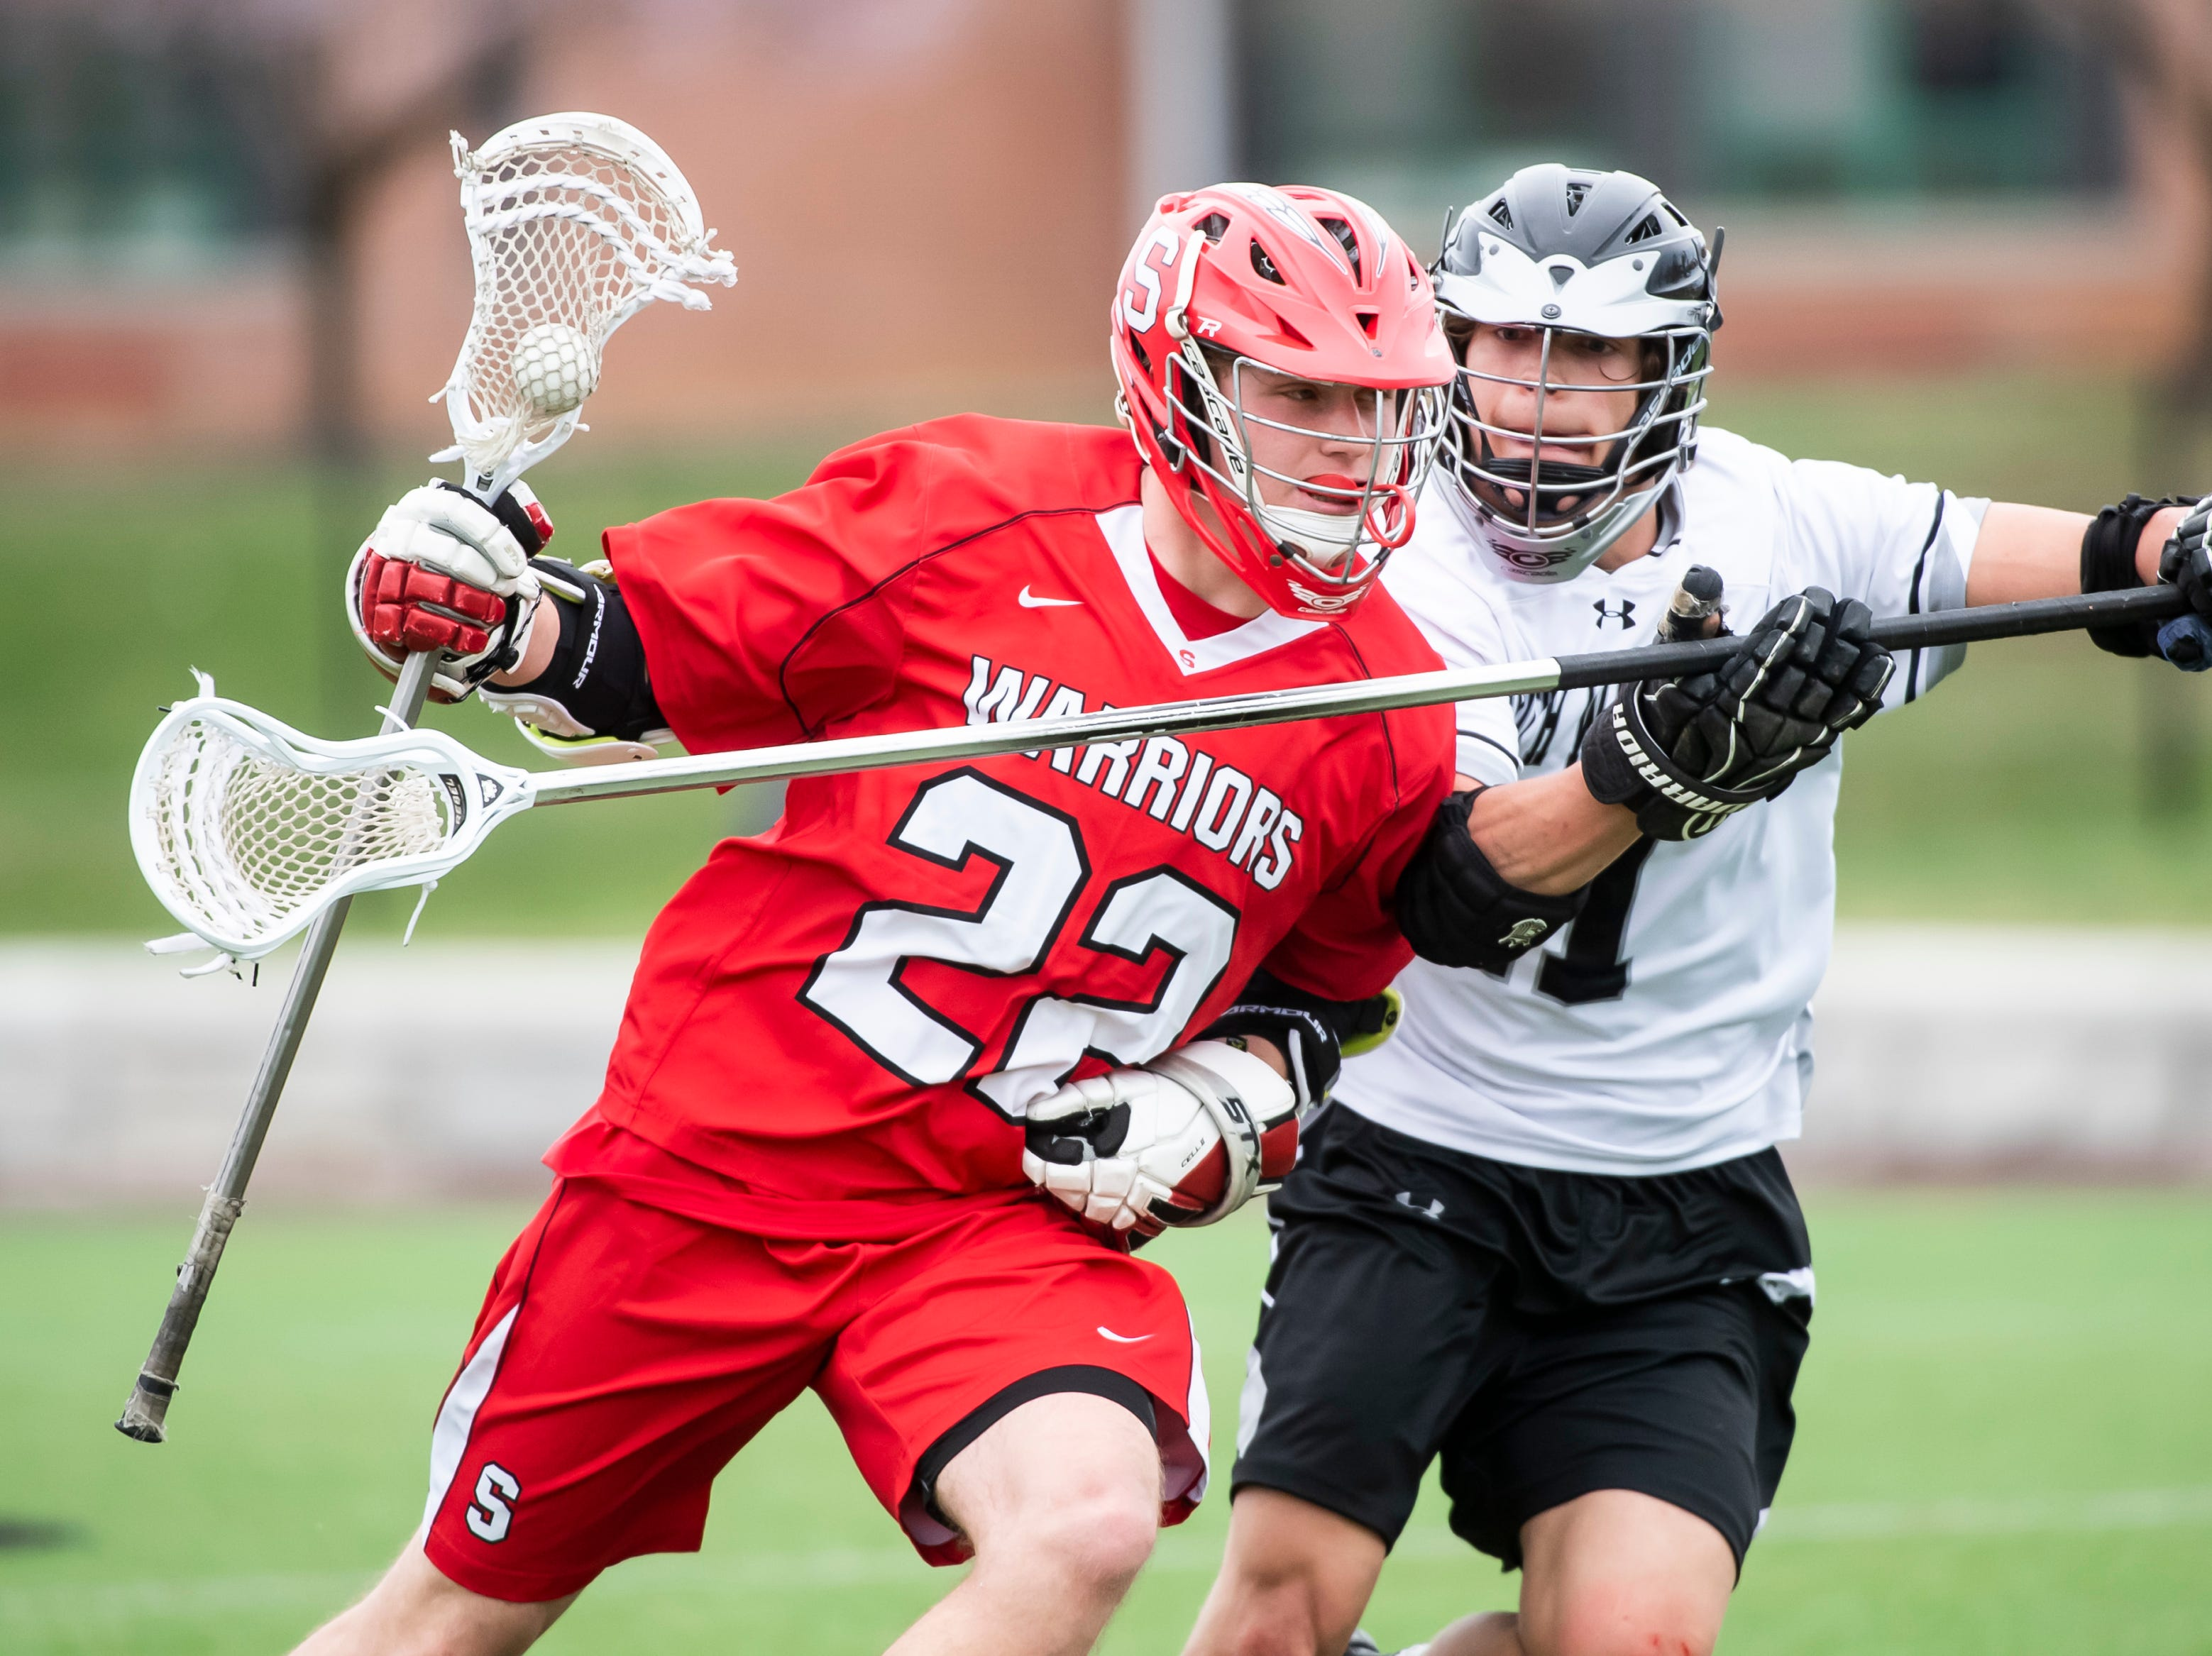 Susquehannock's Allen Clapp (22) gets checked by South Western's Austin Fuhrman during a YAIAA lacrosse game against South Western in Hanover on Monday, April 8, 2019. Susquehannock won 14-3.